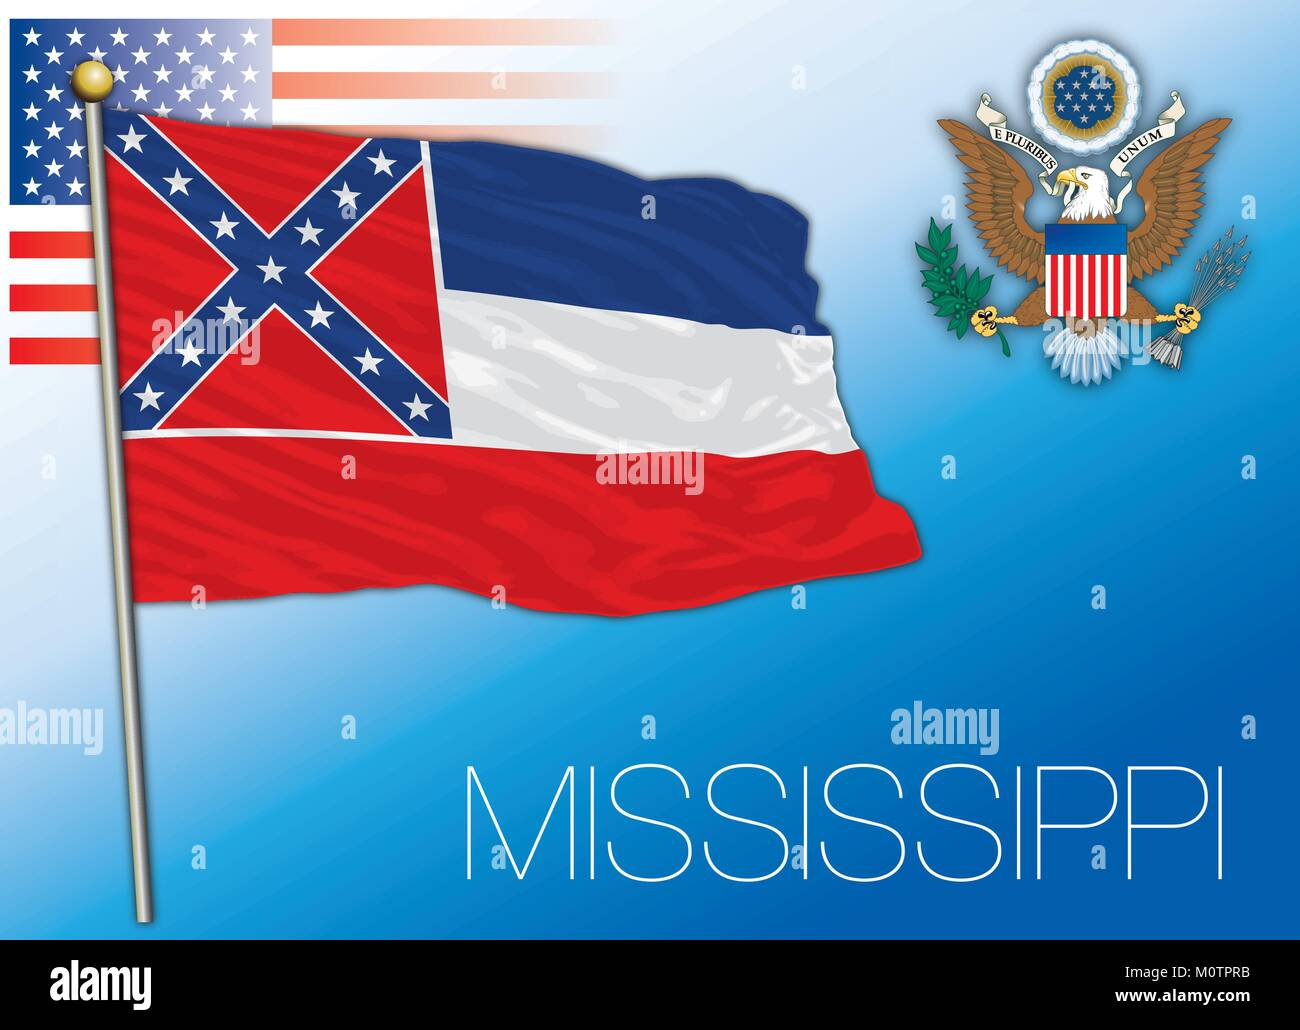 Mississippi federal state flag, United States - Stock Vector